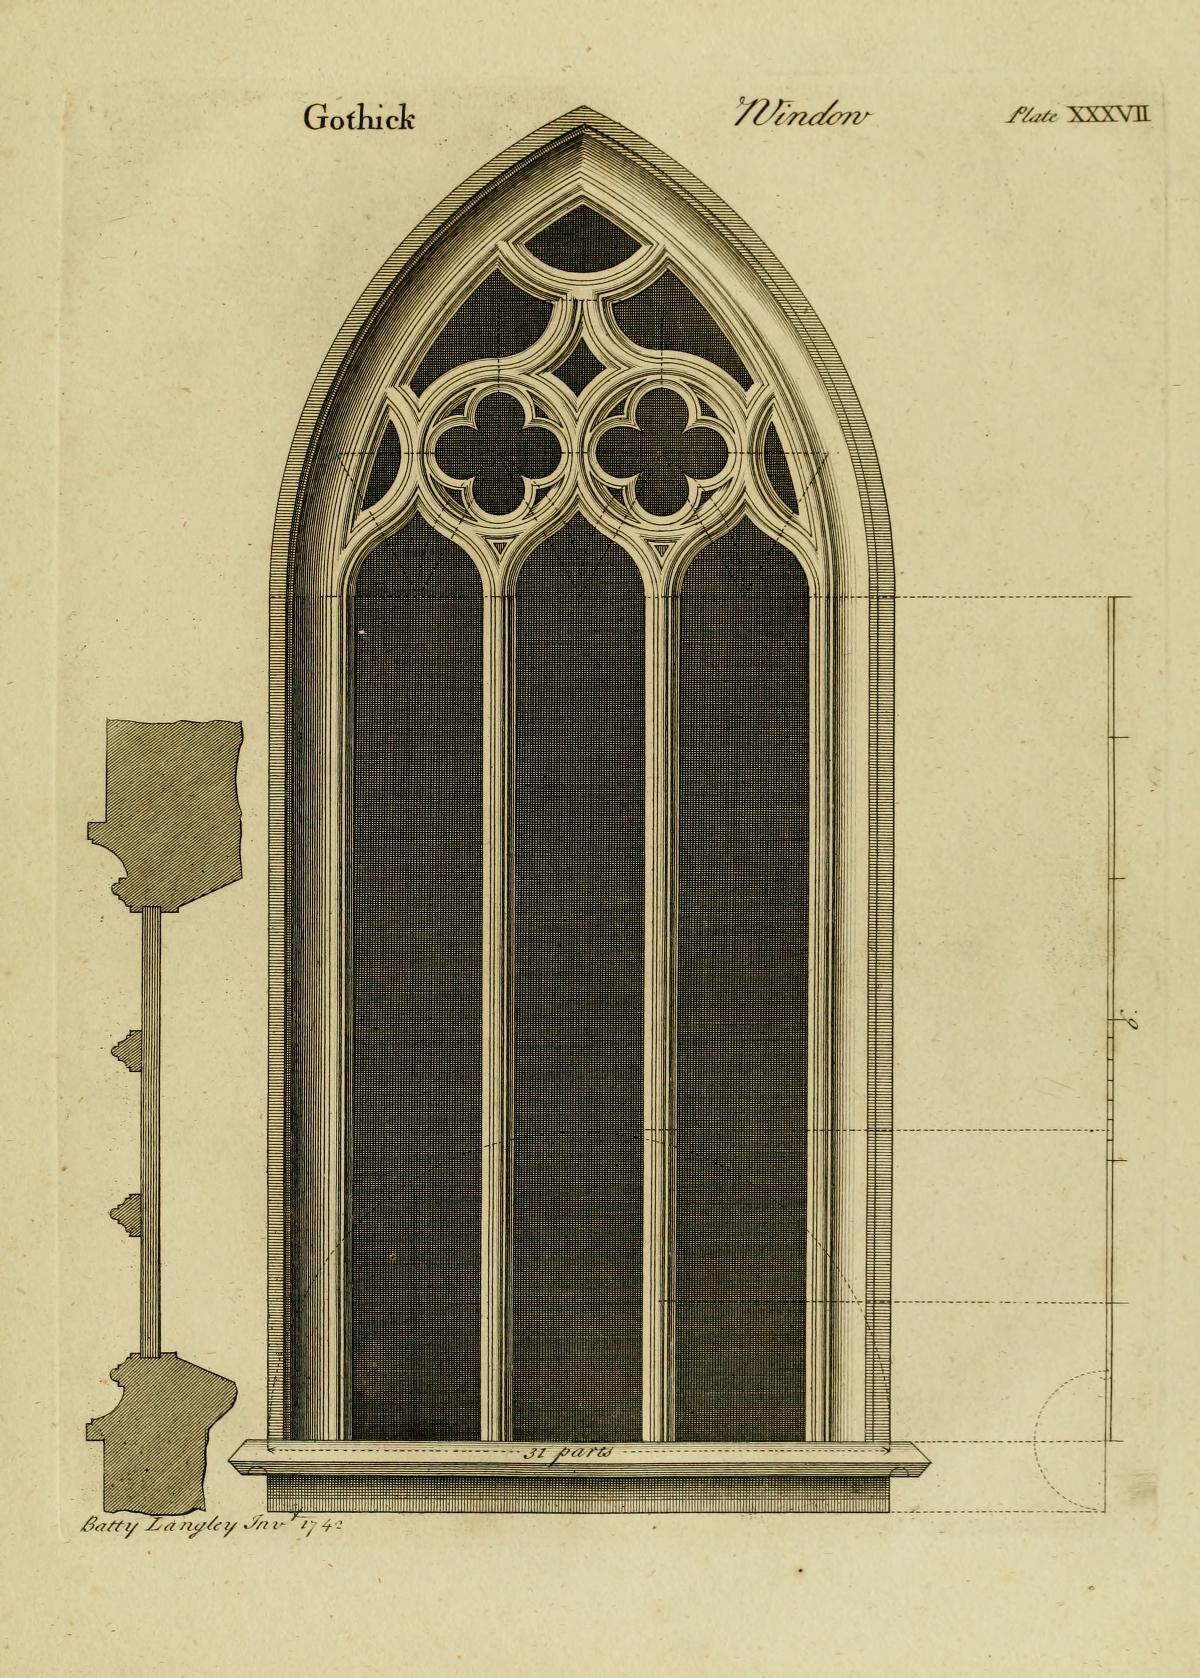 essay about gothic architecture Romanesque and gothic architecture essays: over 180,000 romanesque and gothic architecture essays, romanesque and gothic architecture term papers, romanesque and gothic architecture research paper, book reports 184 990 essays, term and research papers available for unlimited access.